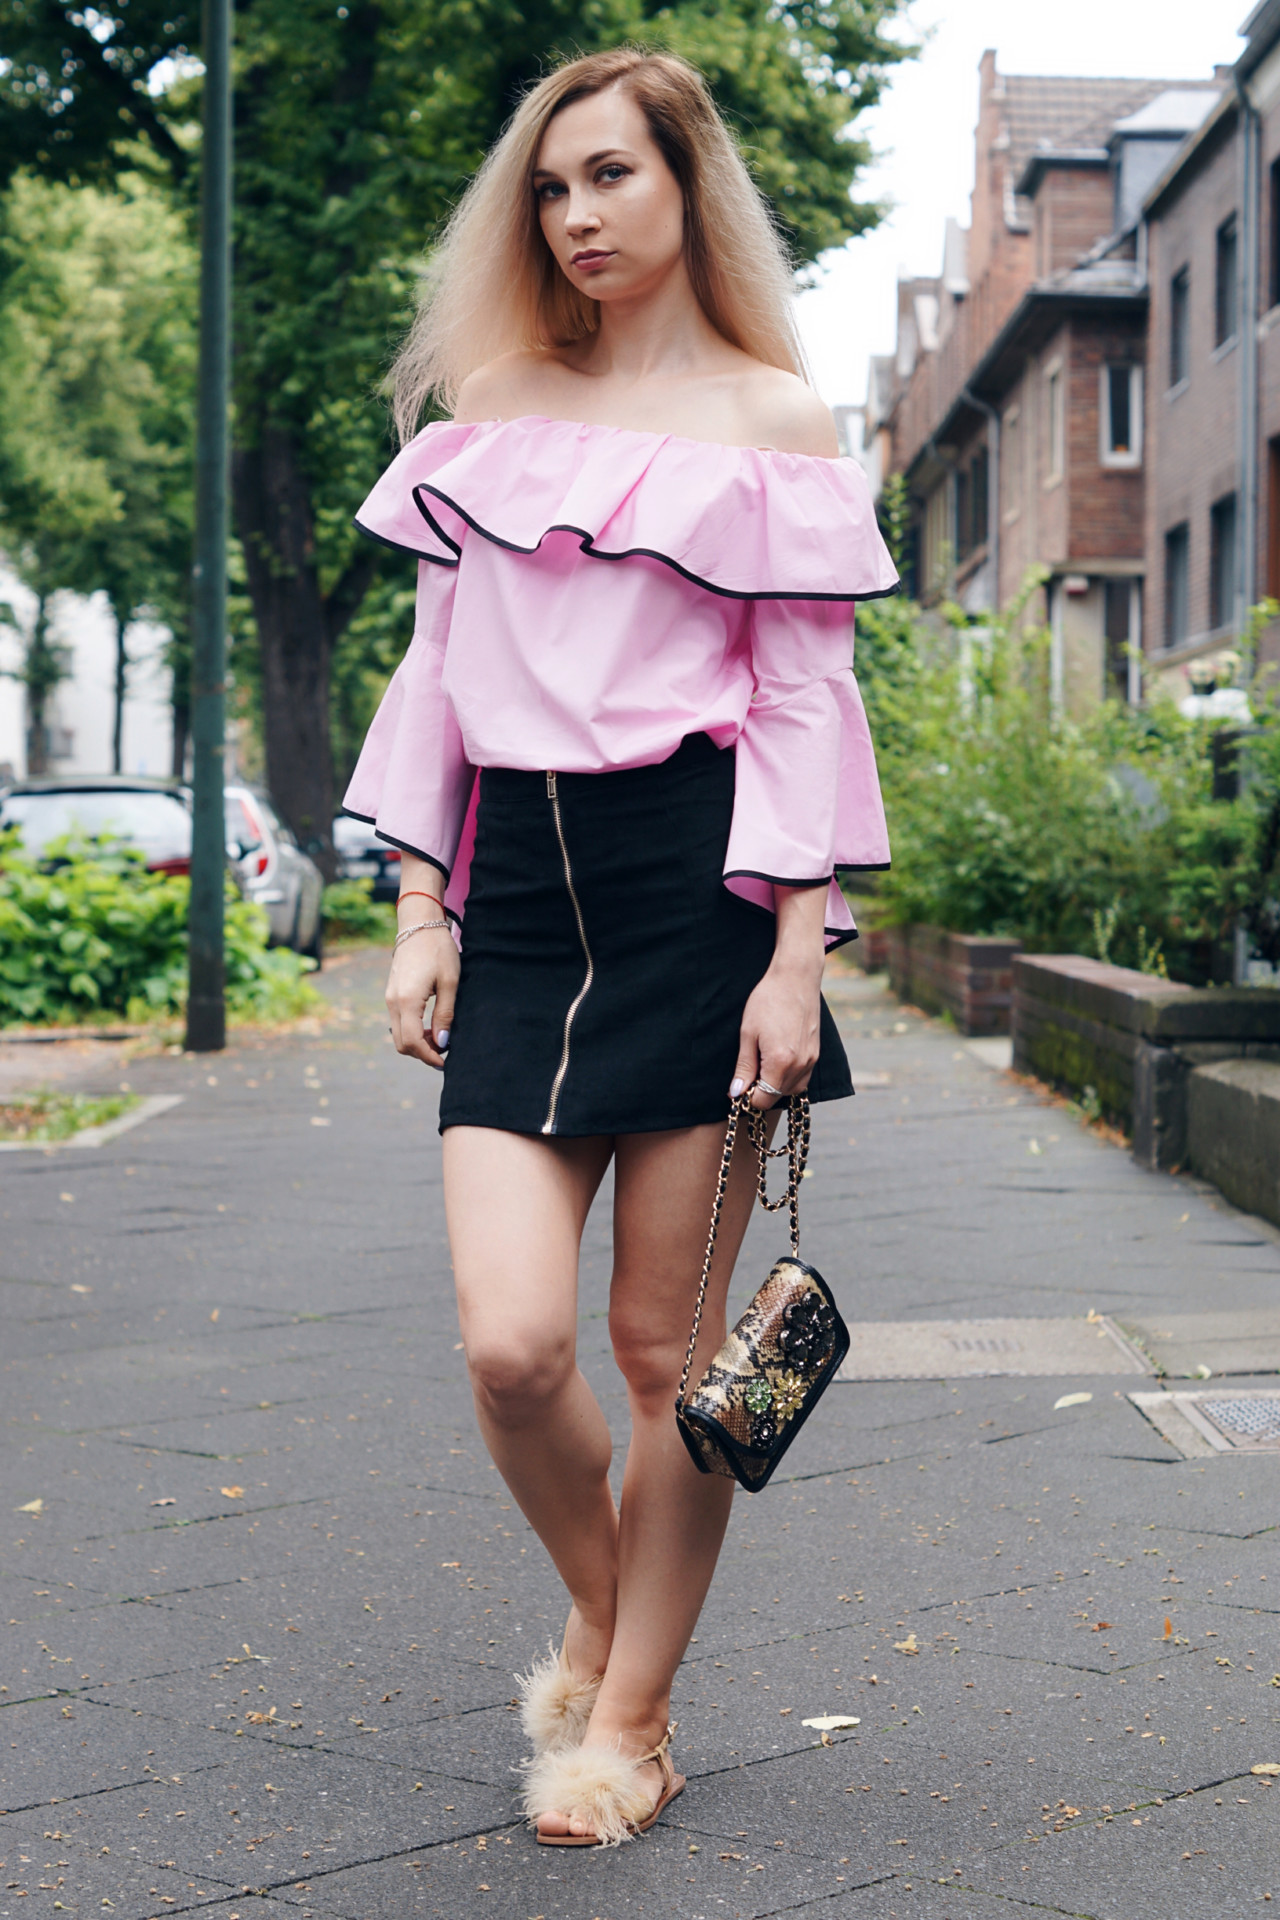 dbkstylez_fashion_off-shoulder_trendy_street-style_fashionblog_мода_стиль_фэшн_zara